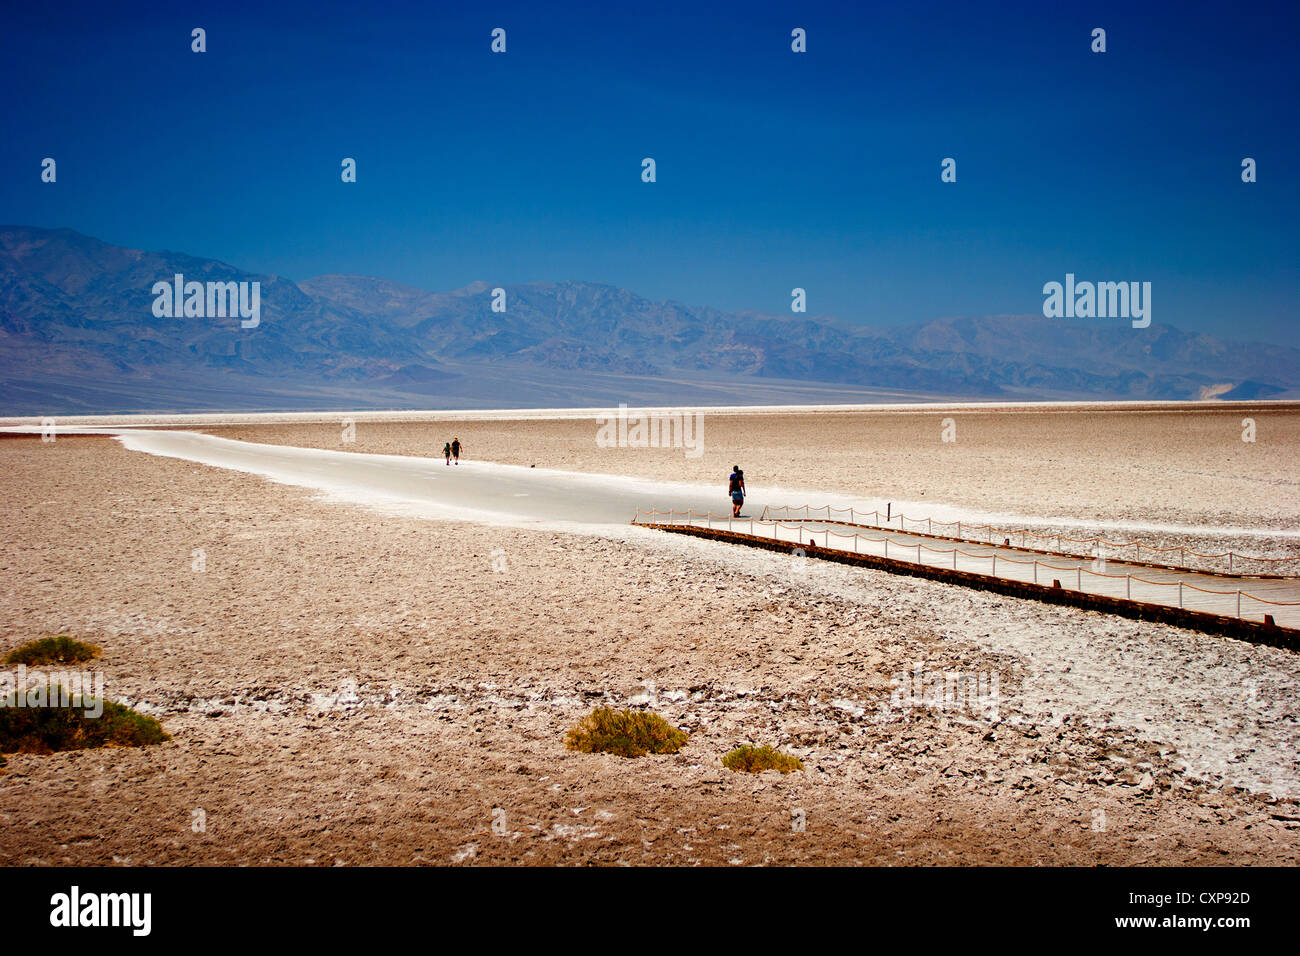 Bad water Death Valley California USA. Lowest elevation in the USA -282 ft -86m below sea level - Stock Image